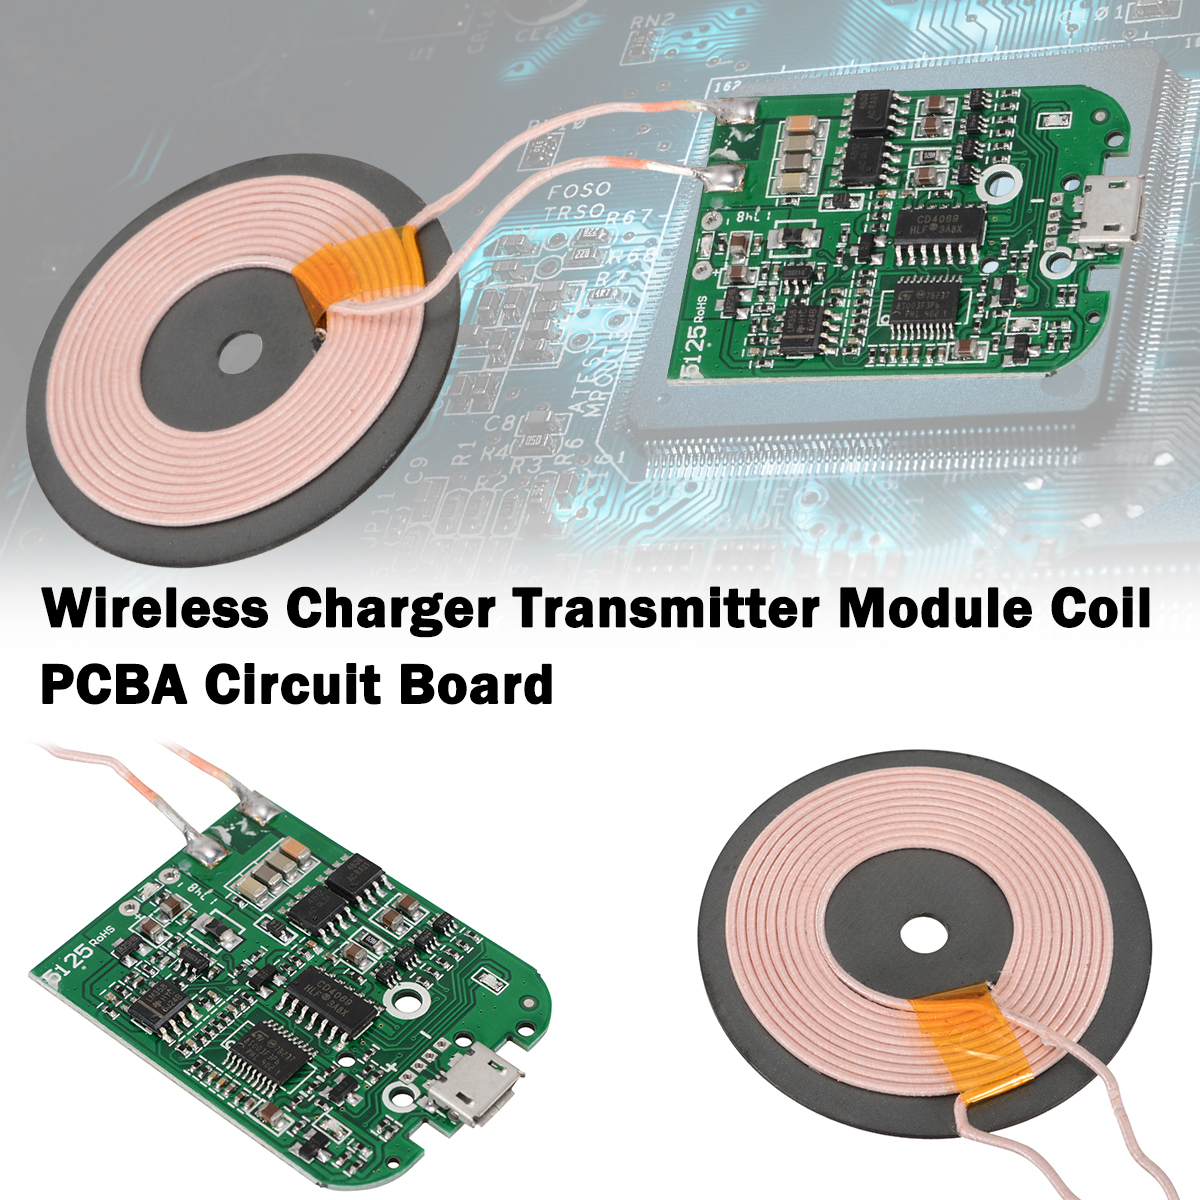 New Qi Fast Wireless Charger PCBA Circuit Board Transmitter Module + Coil Charging High Quality Qi Wireless Charging Standard